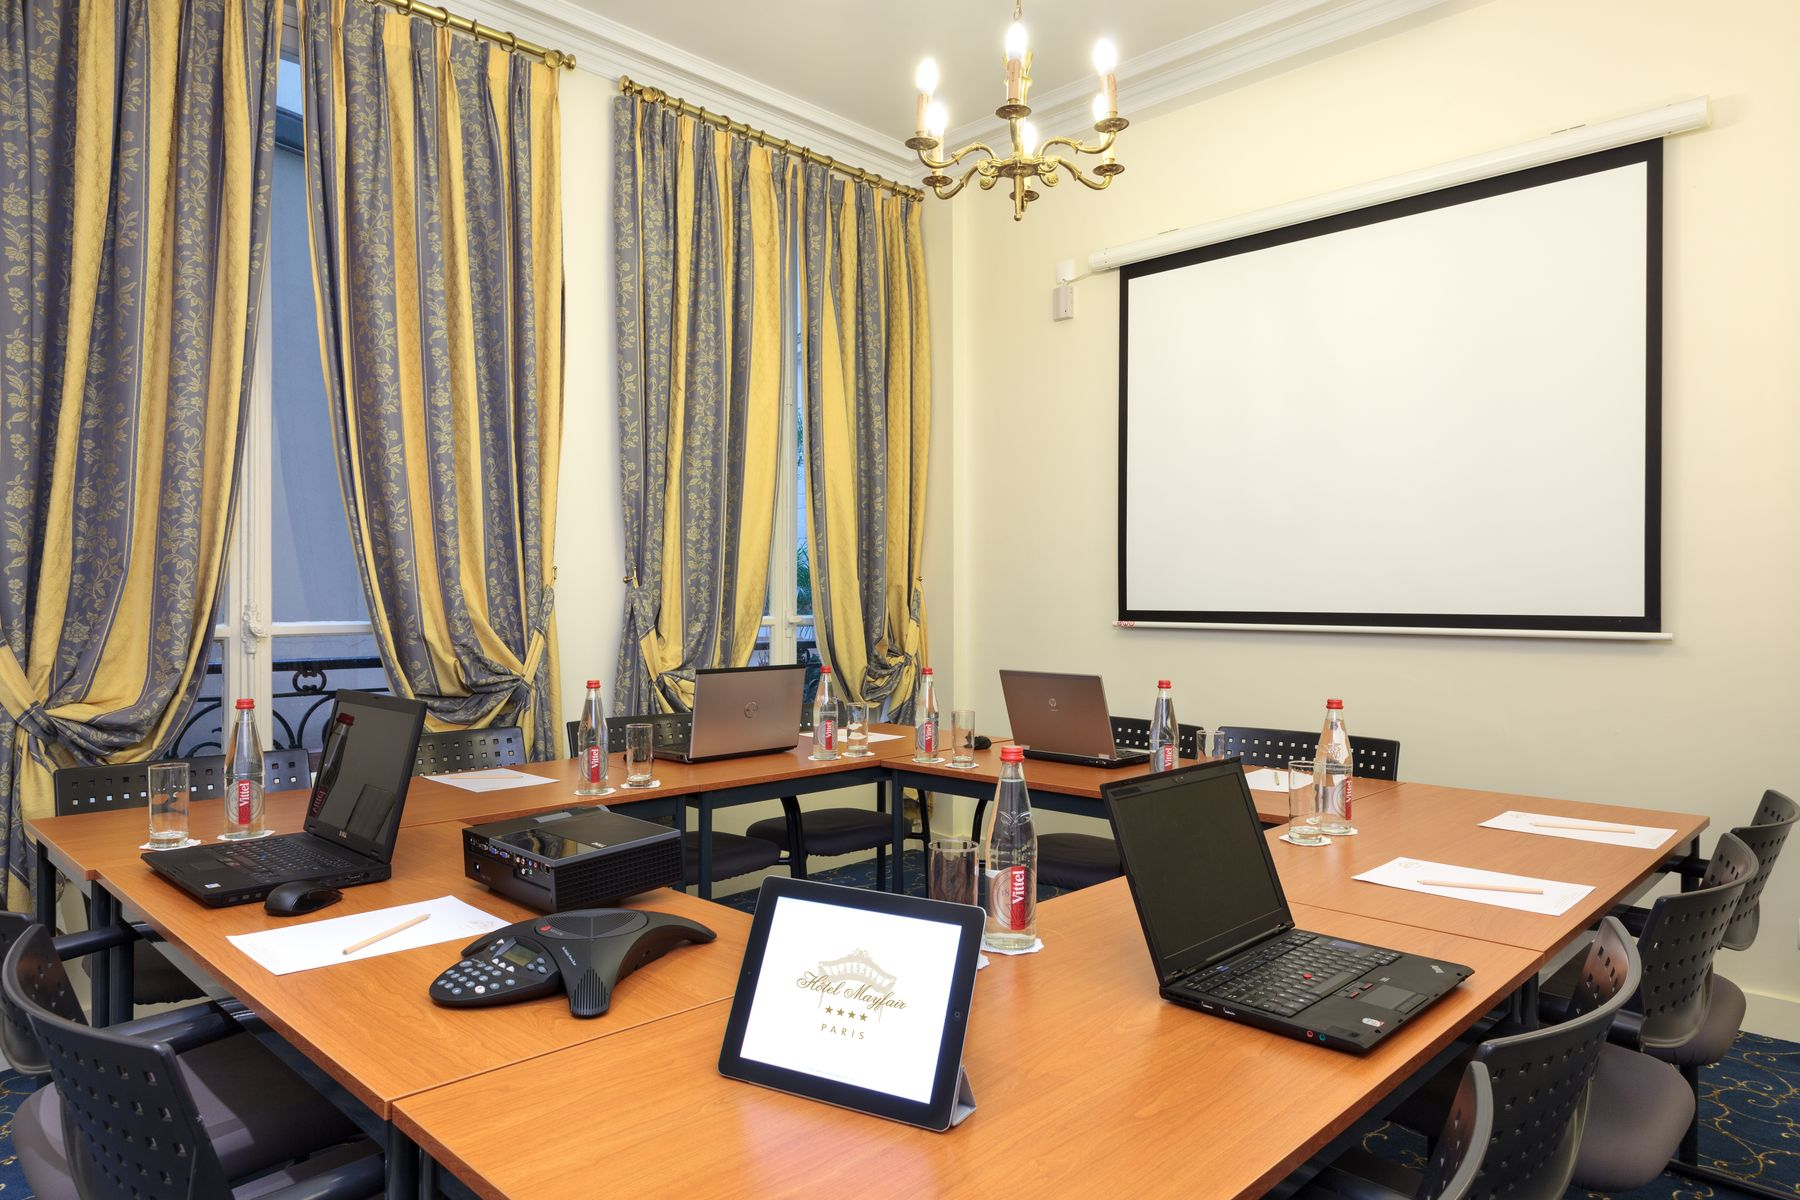 378/Galerie/8-Hotel_Mayfair_Paris_Business_Meeting_Room_1_resultat.jpg